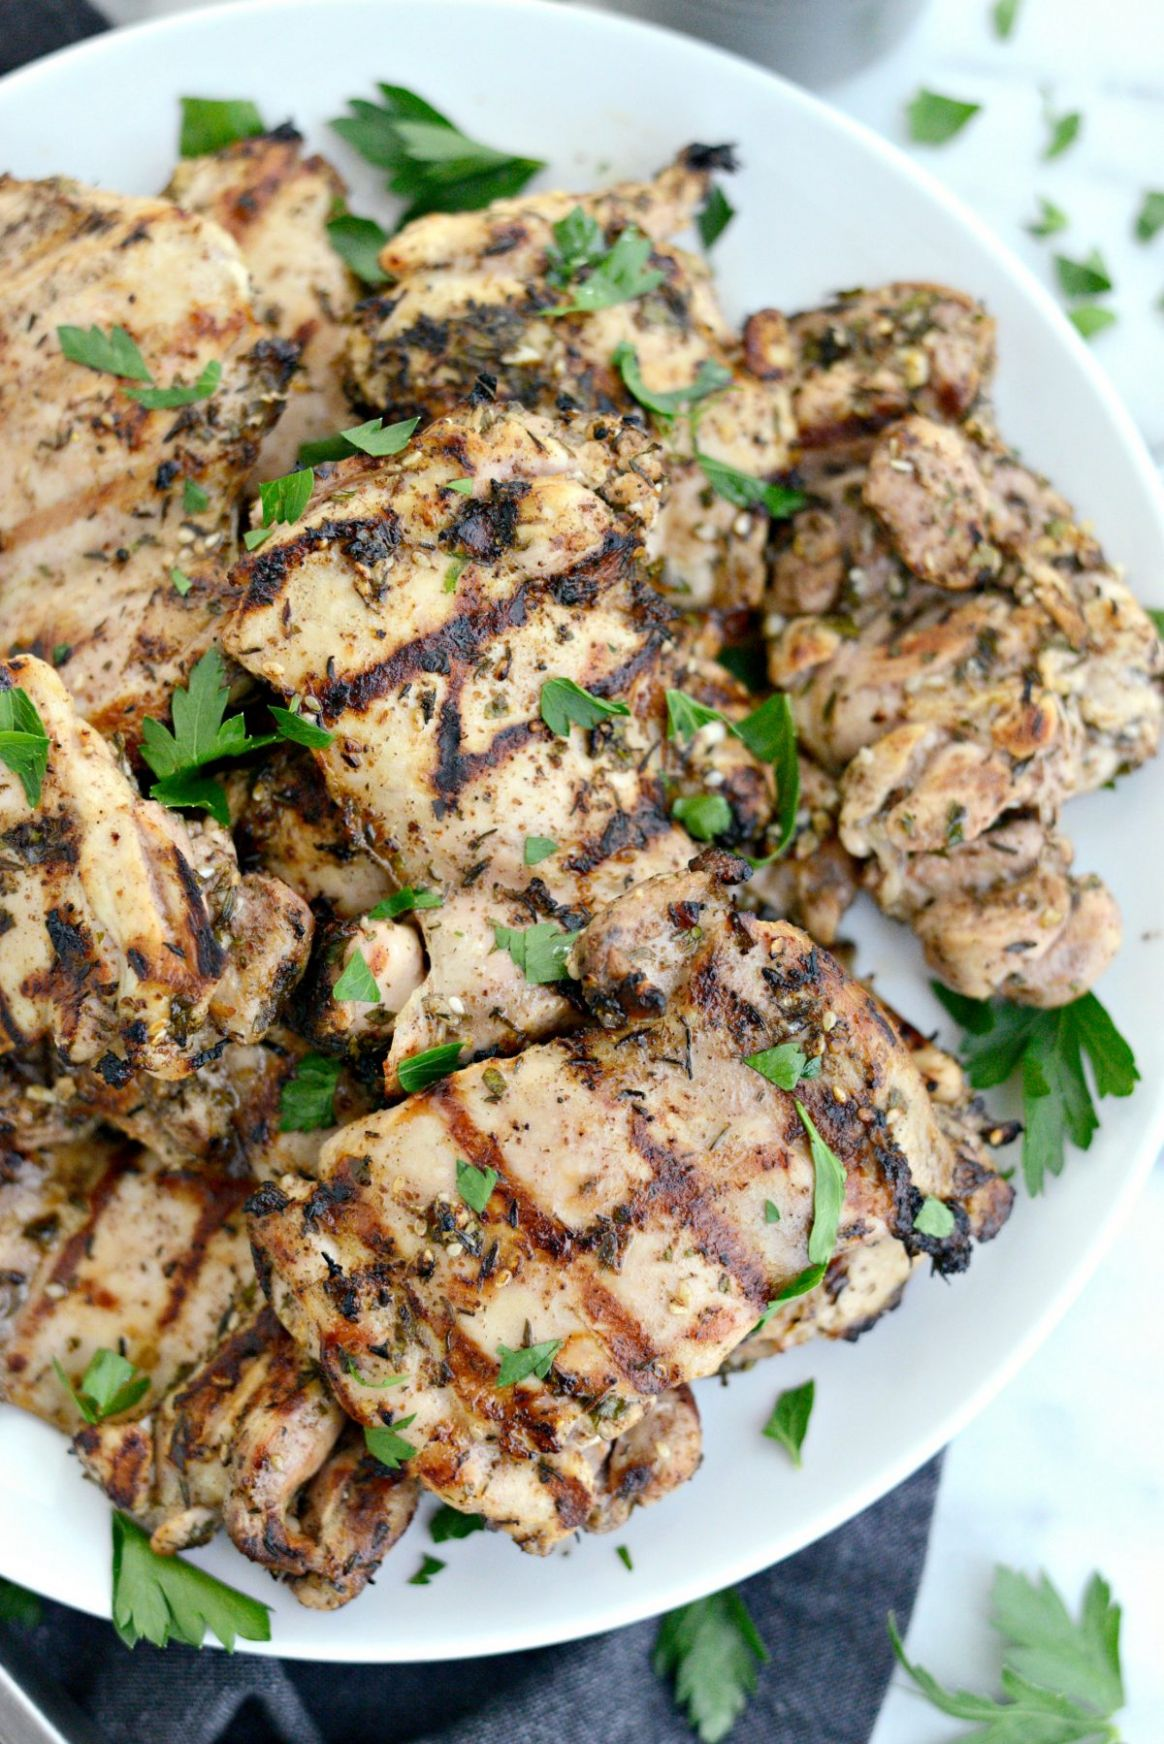 Grilled Za'atar Chicken Thighs - Simply Scratch